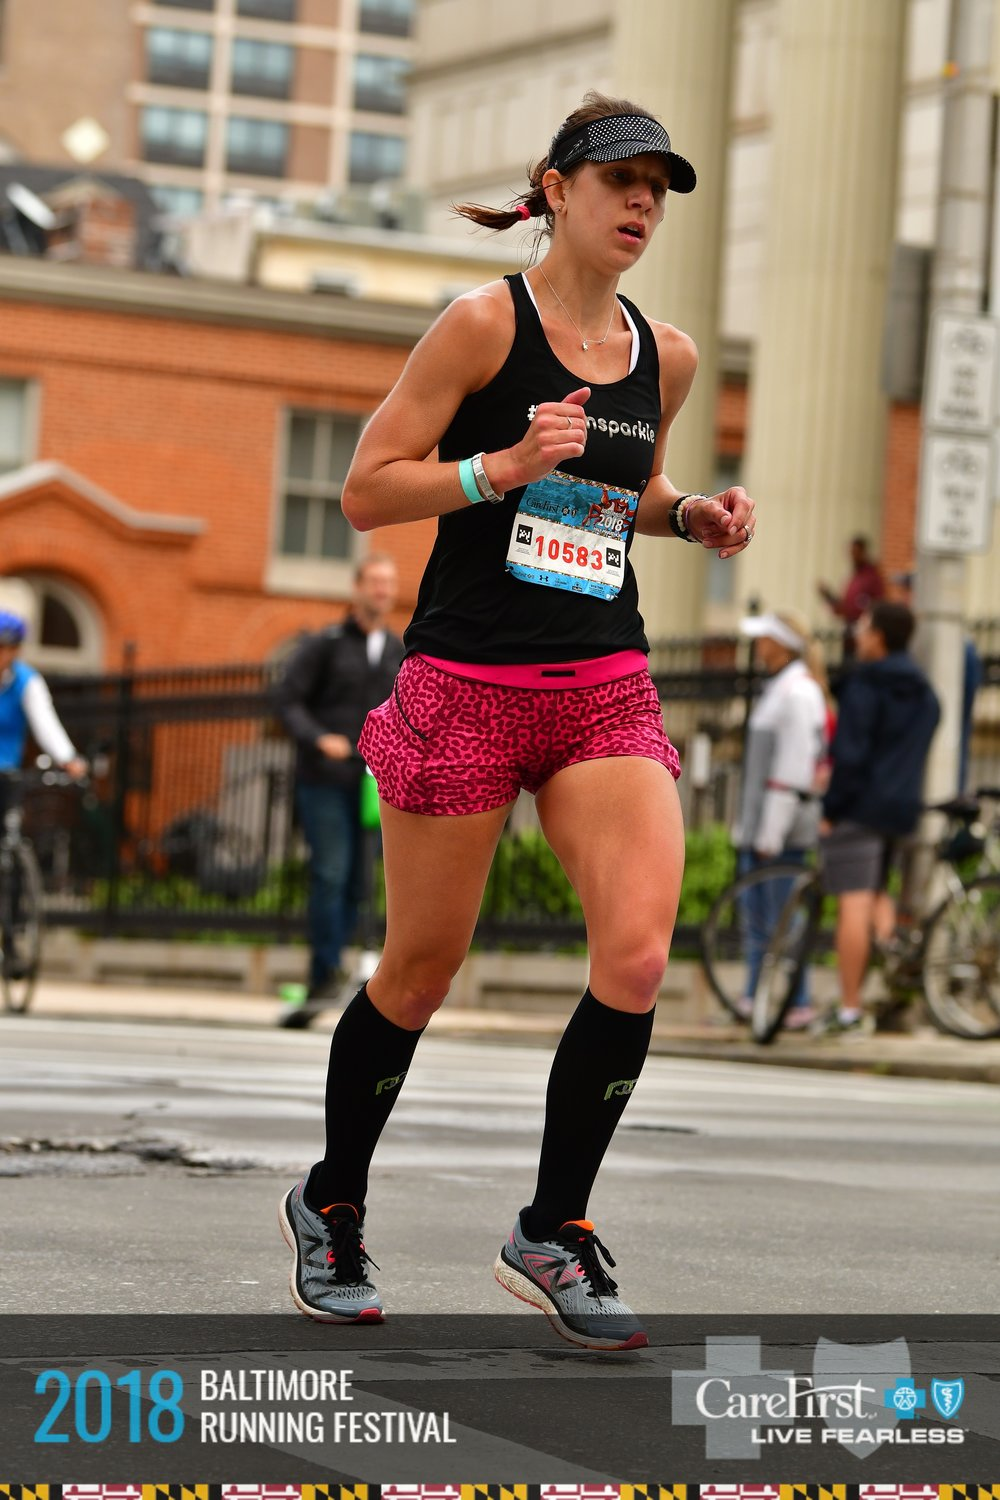 Not all race photos are fabulous! At least they're free!